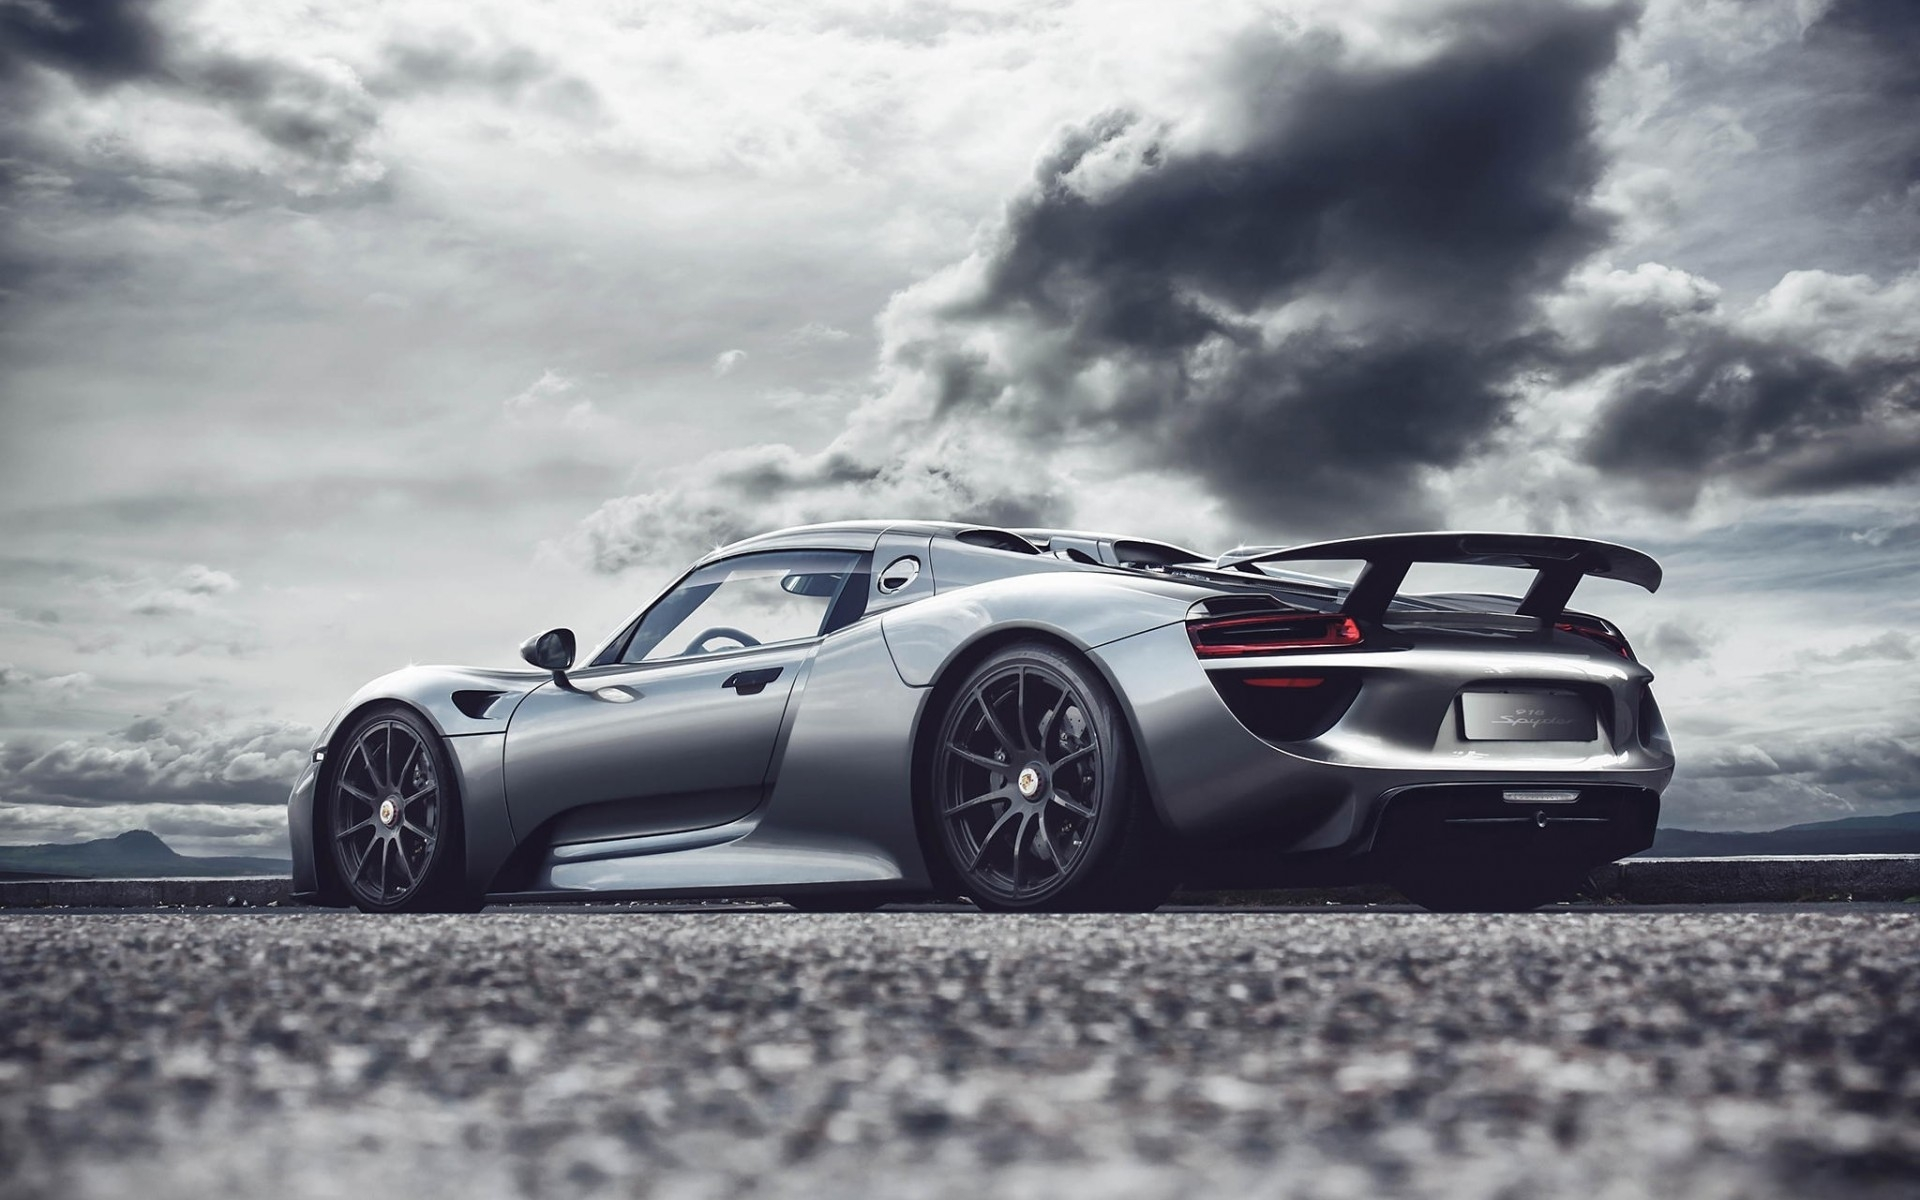 porsche 918 computer wallpapers desktop backgrounds 1920x1200 id 546813. Black Bedroom Furniture Sets. Home Design Ideas